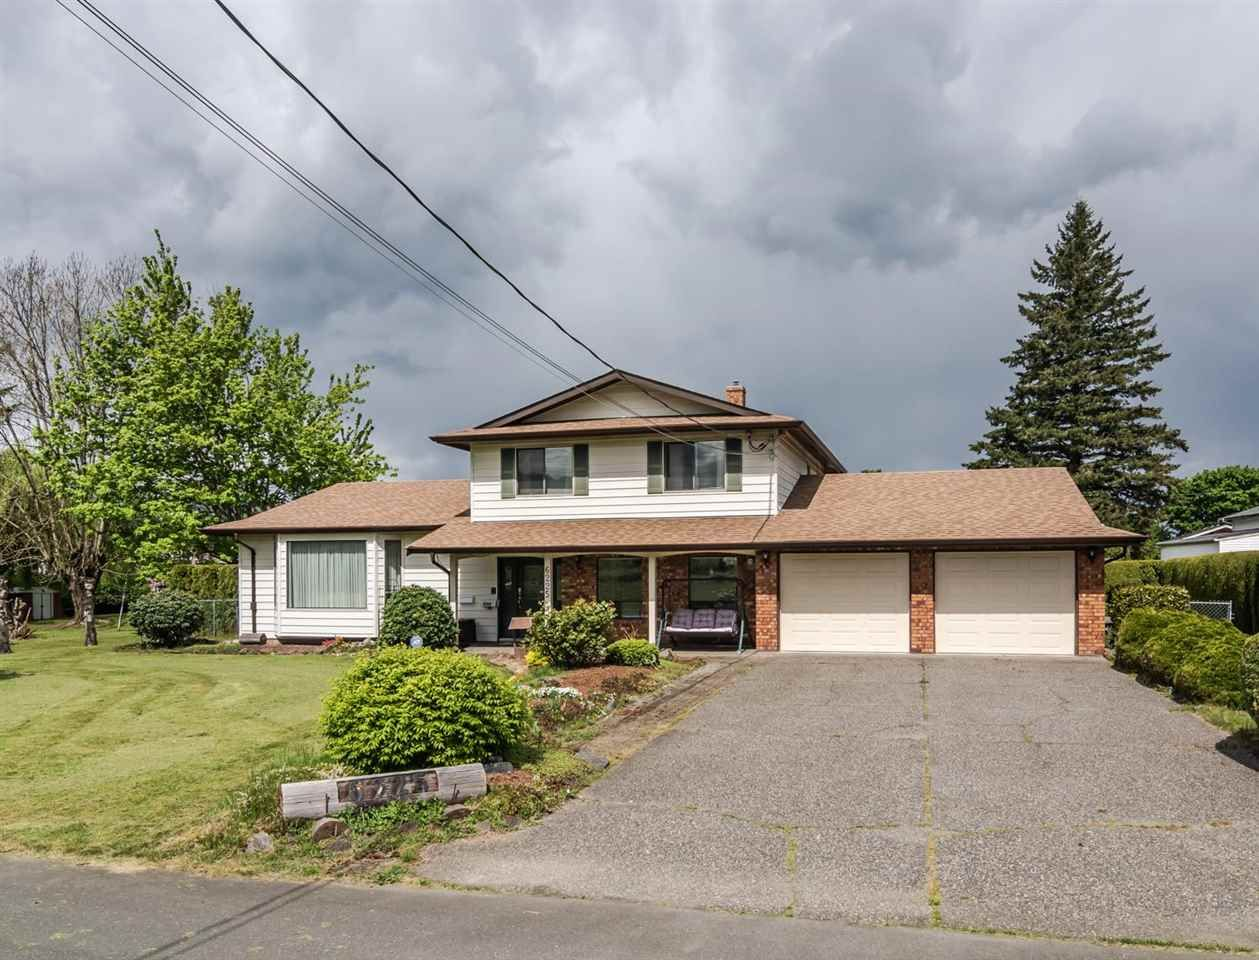 Main Photo: 6225 EDSON Drive in Chilliwack: Sardis West Vedder Rd House for sale (Sardis)  : MLS®# R2576971